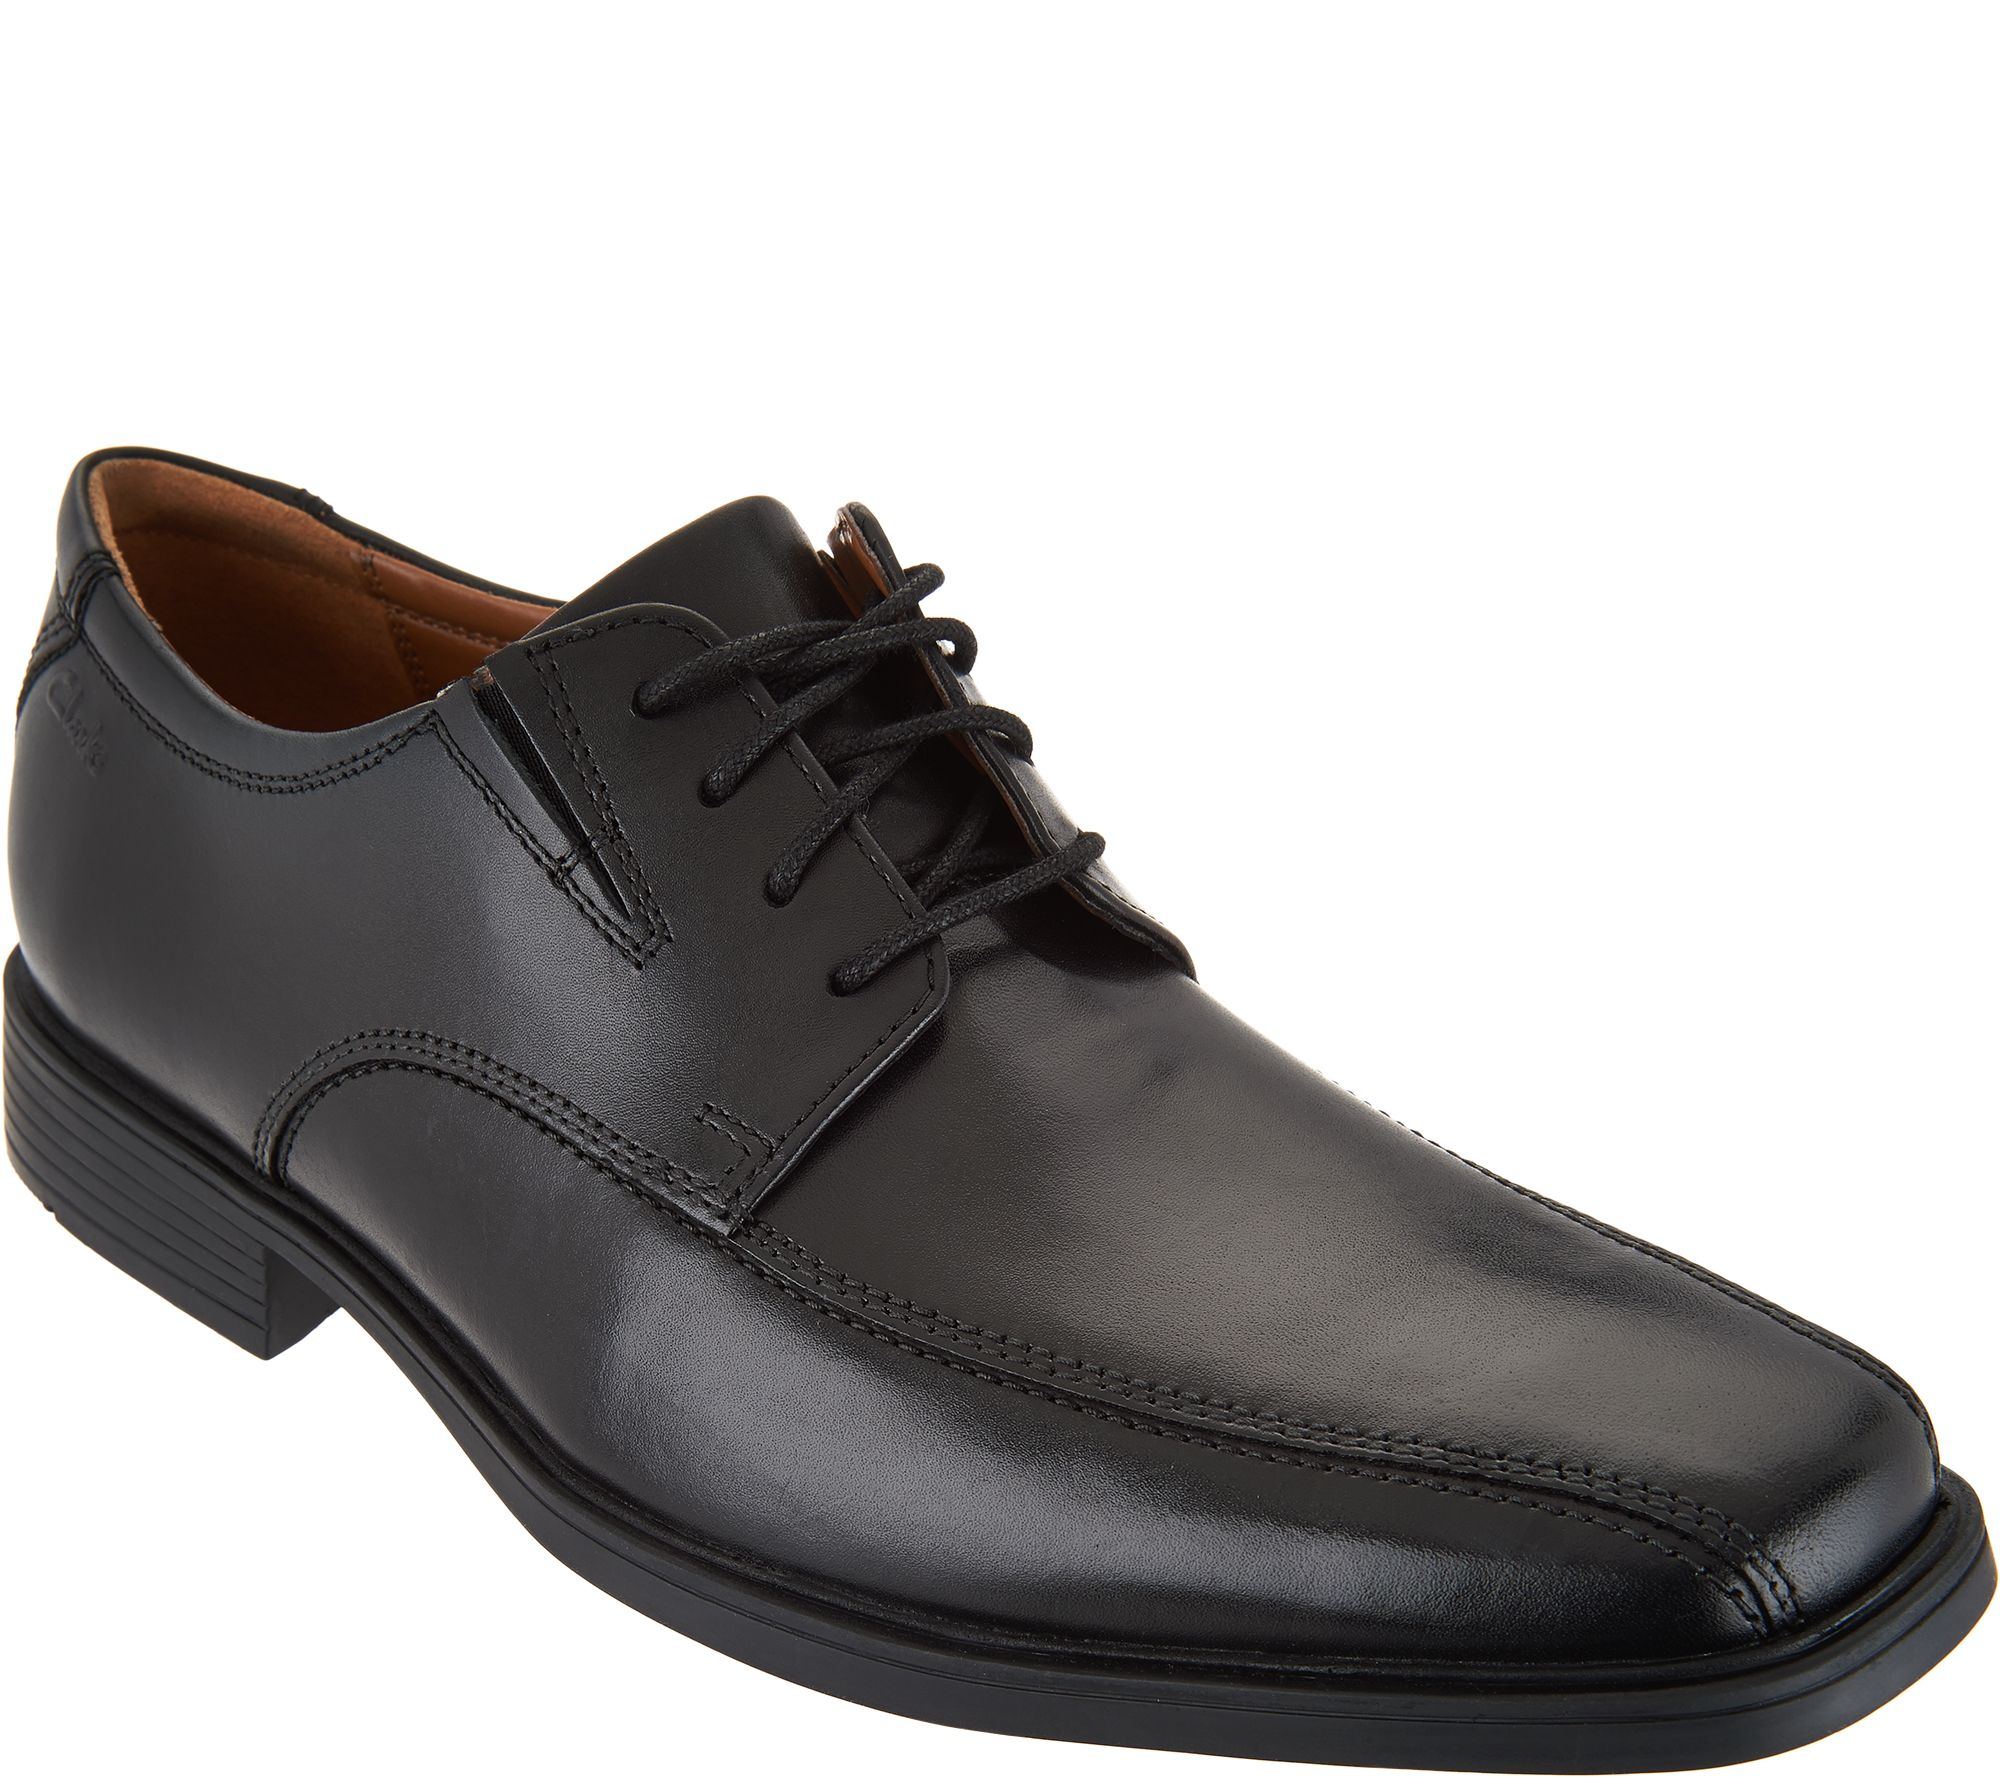 Clarks Men's Leather Lace-up Dress Shoes - Tilden Walk - Page 1